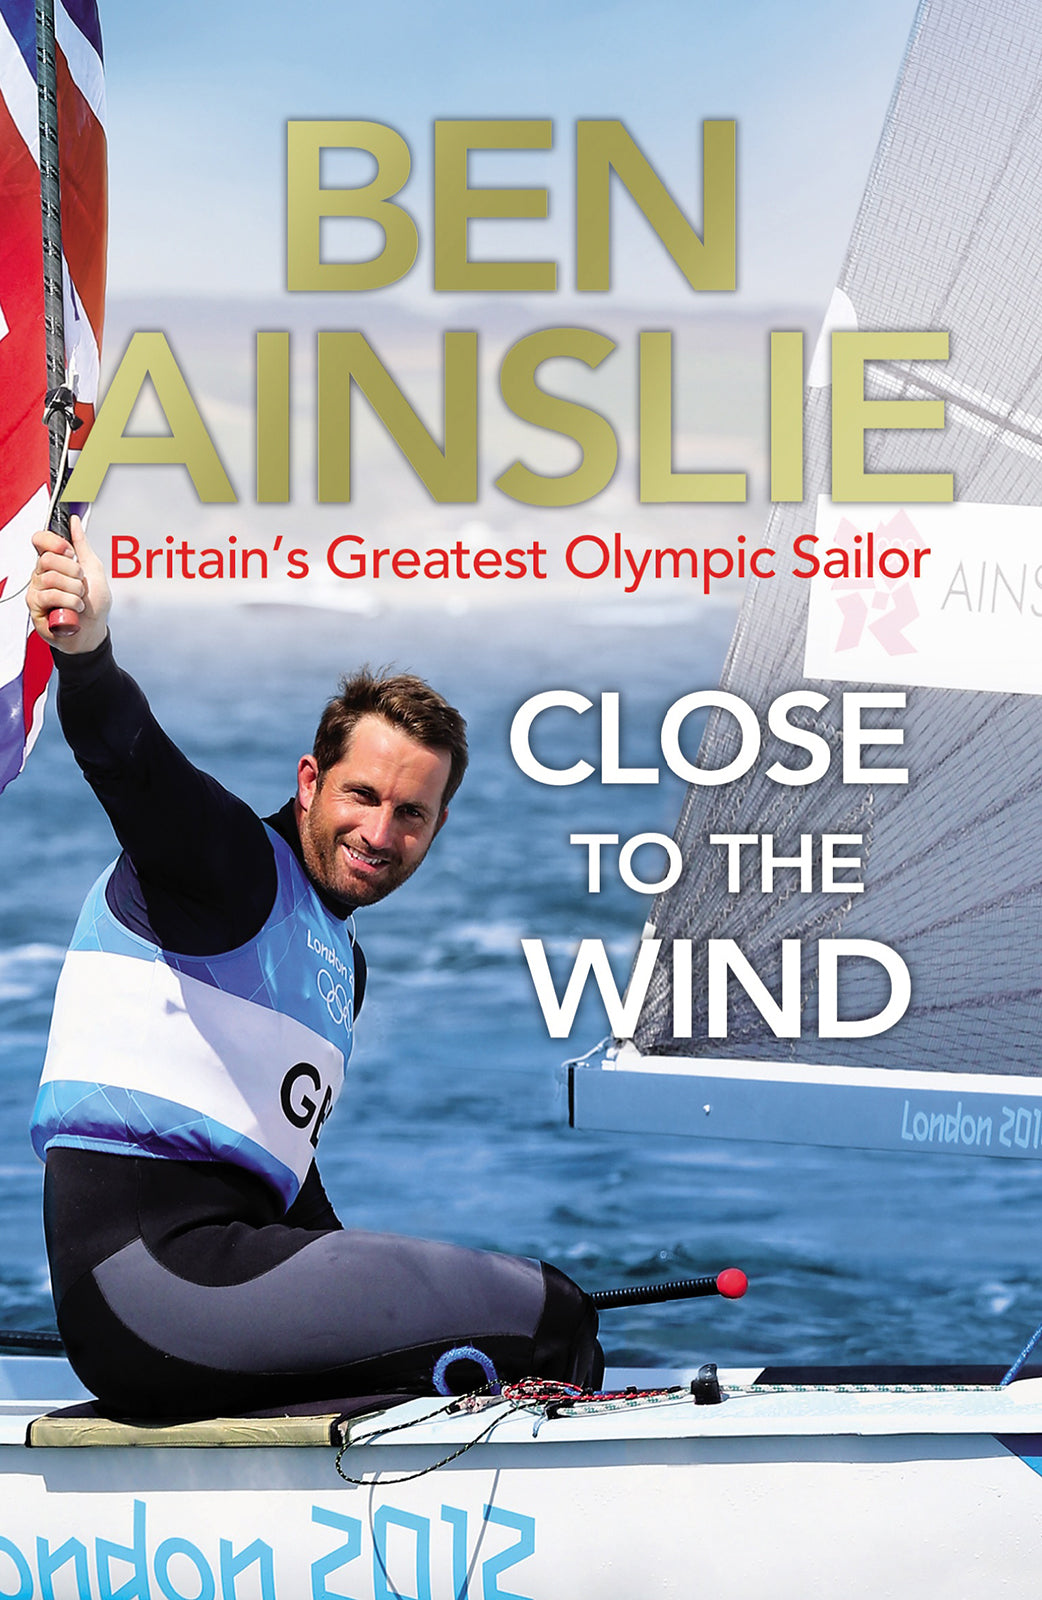 Ben Ainslie Autobiography - Close to the Wind